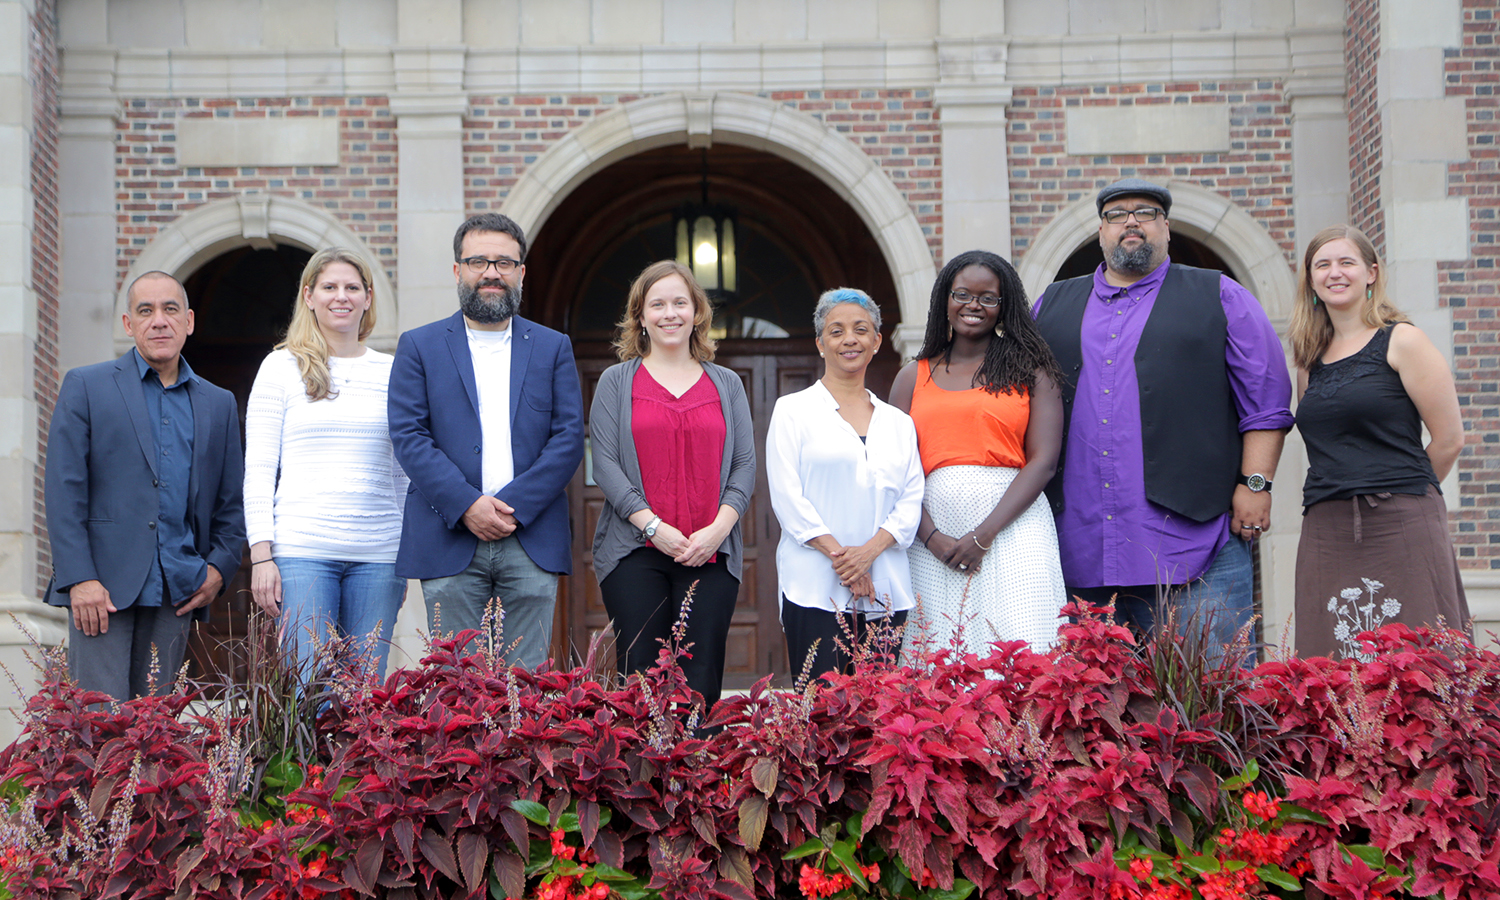 New faculty come together for a group photo in front of Coxe Hall during the new faculty orientation.